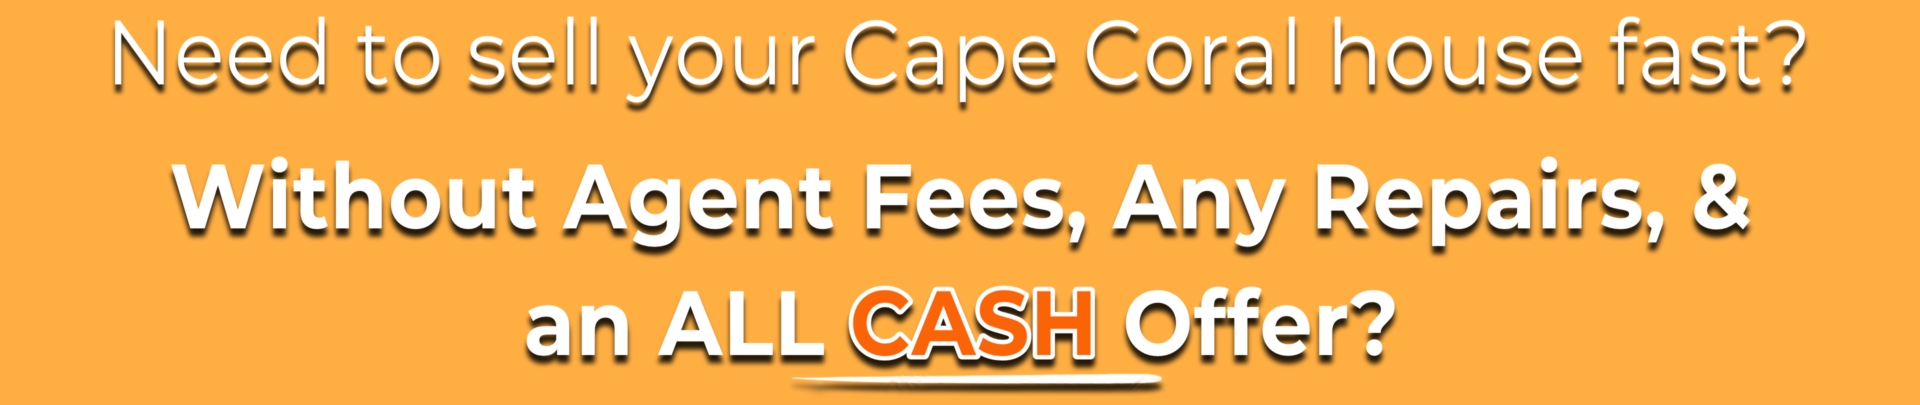 Sell My House Fast Cape Coral | We Buy Houses Cape Coral | Cash for Houses Cape Coral